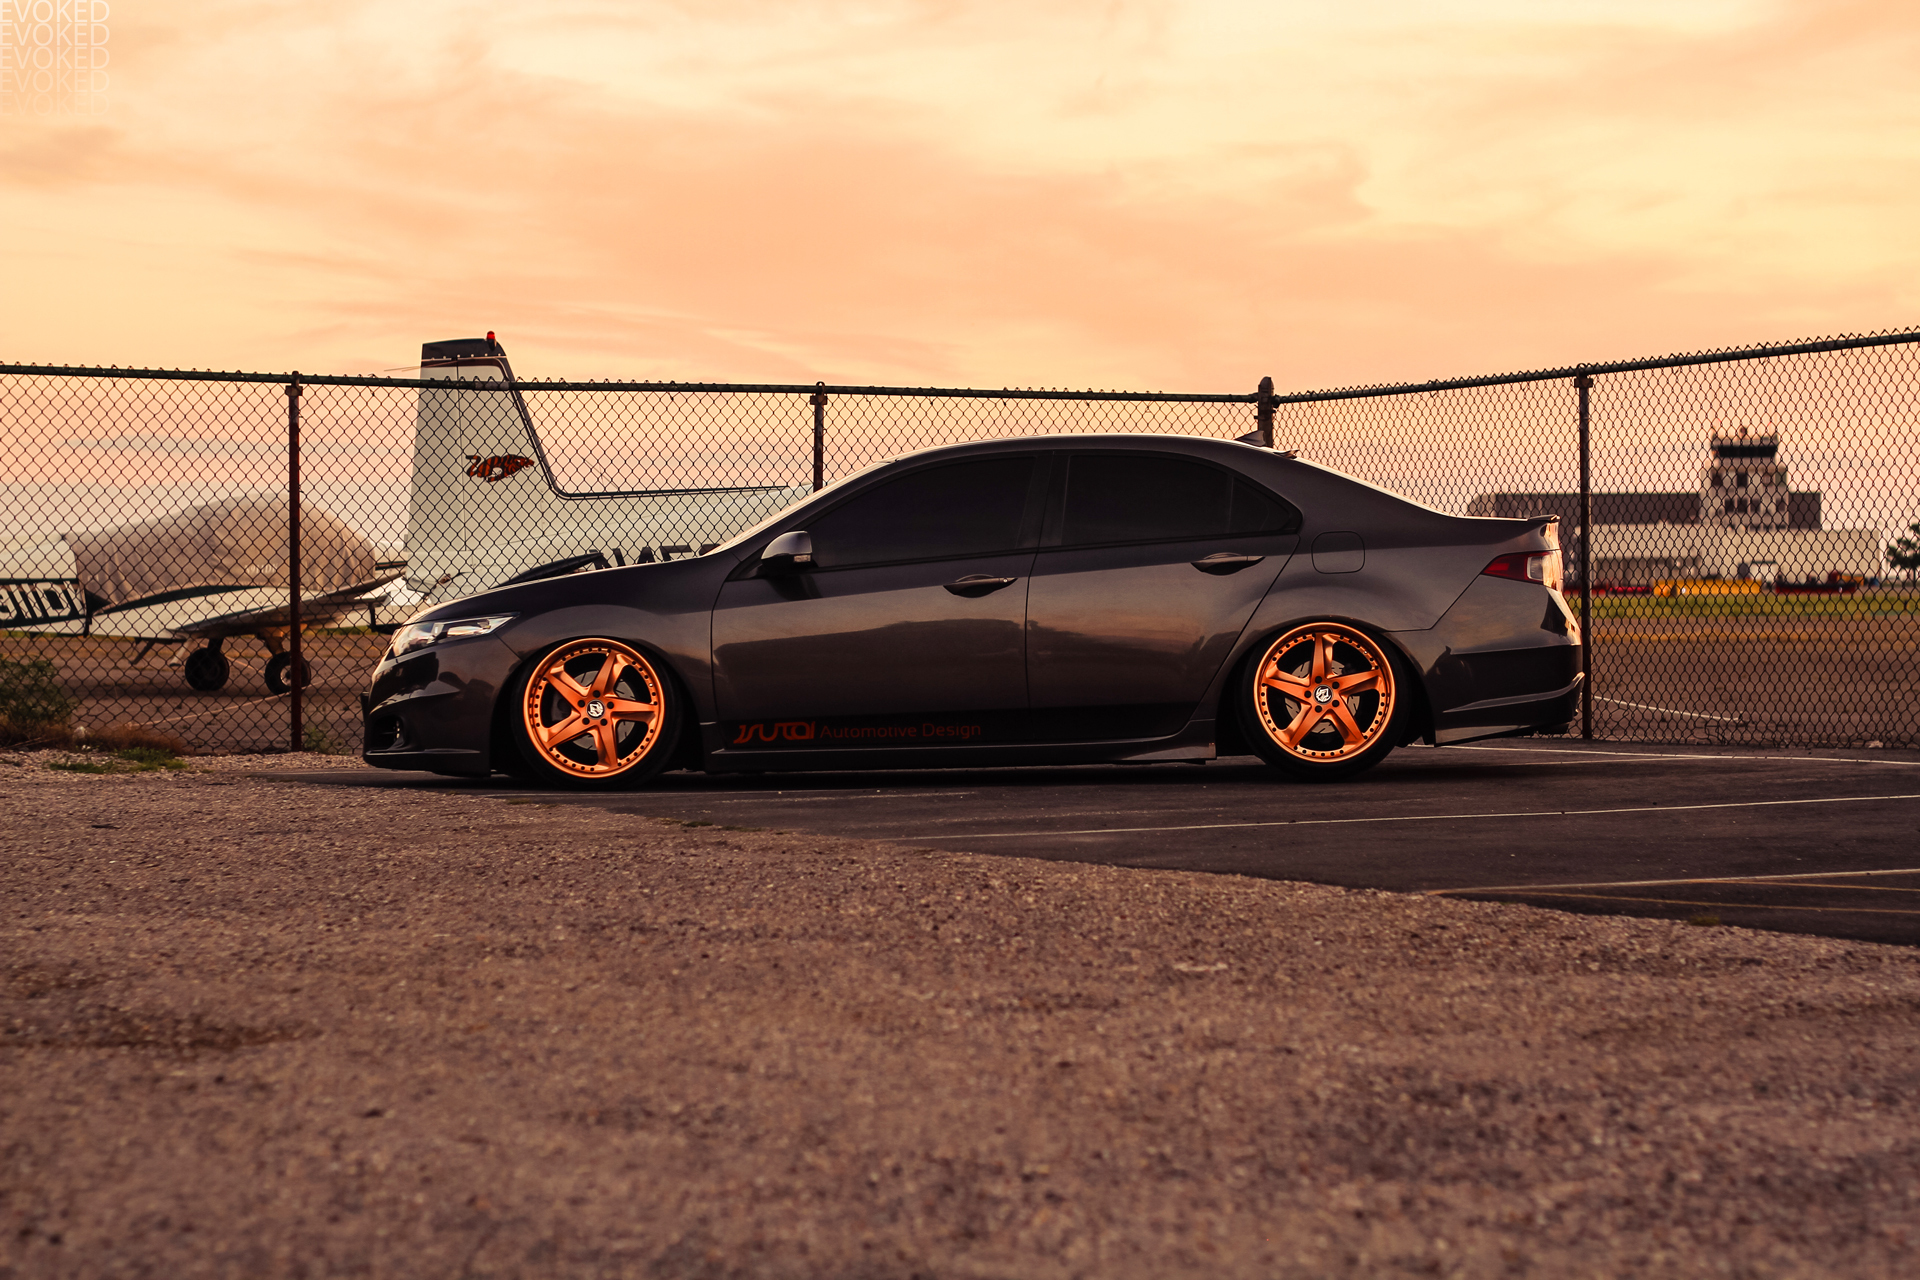 1920x1280 - Acura TSX Wallpapers 26